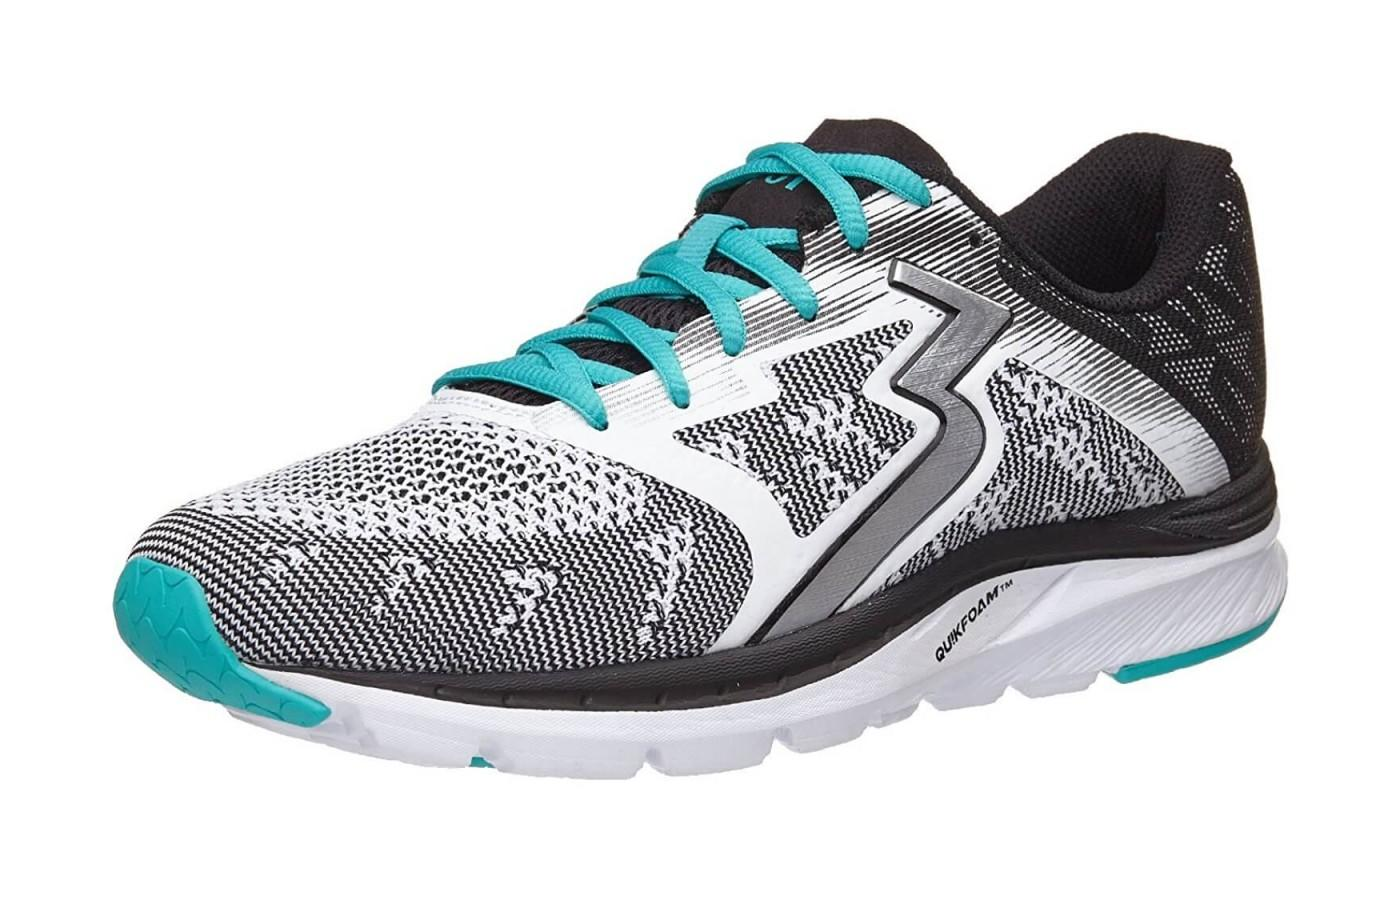 here's a look at 361 spinject for women